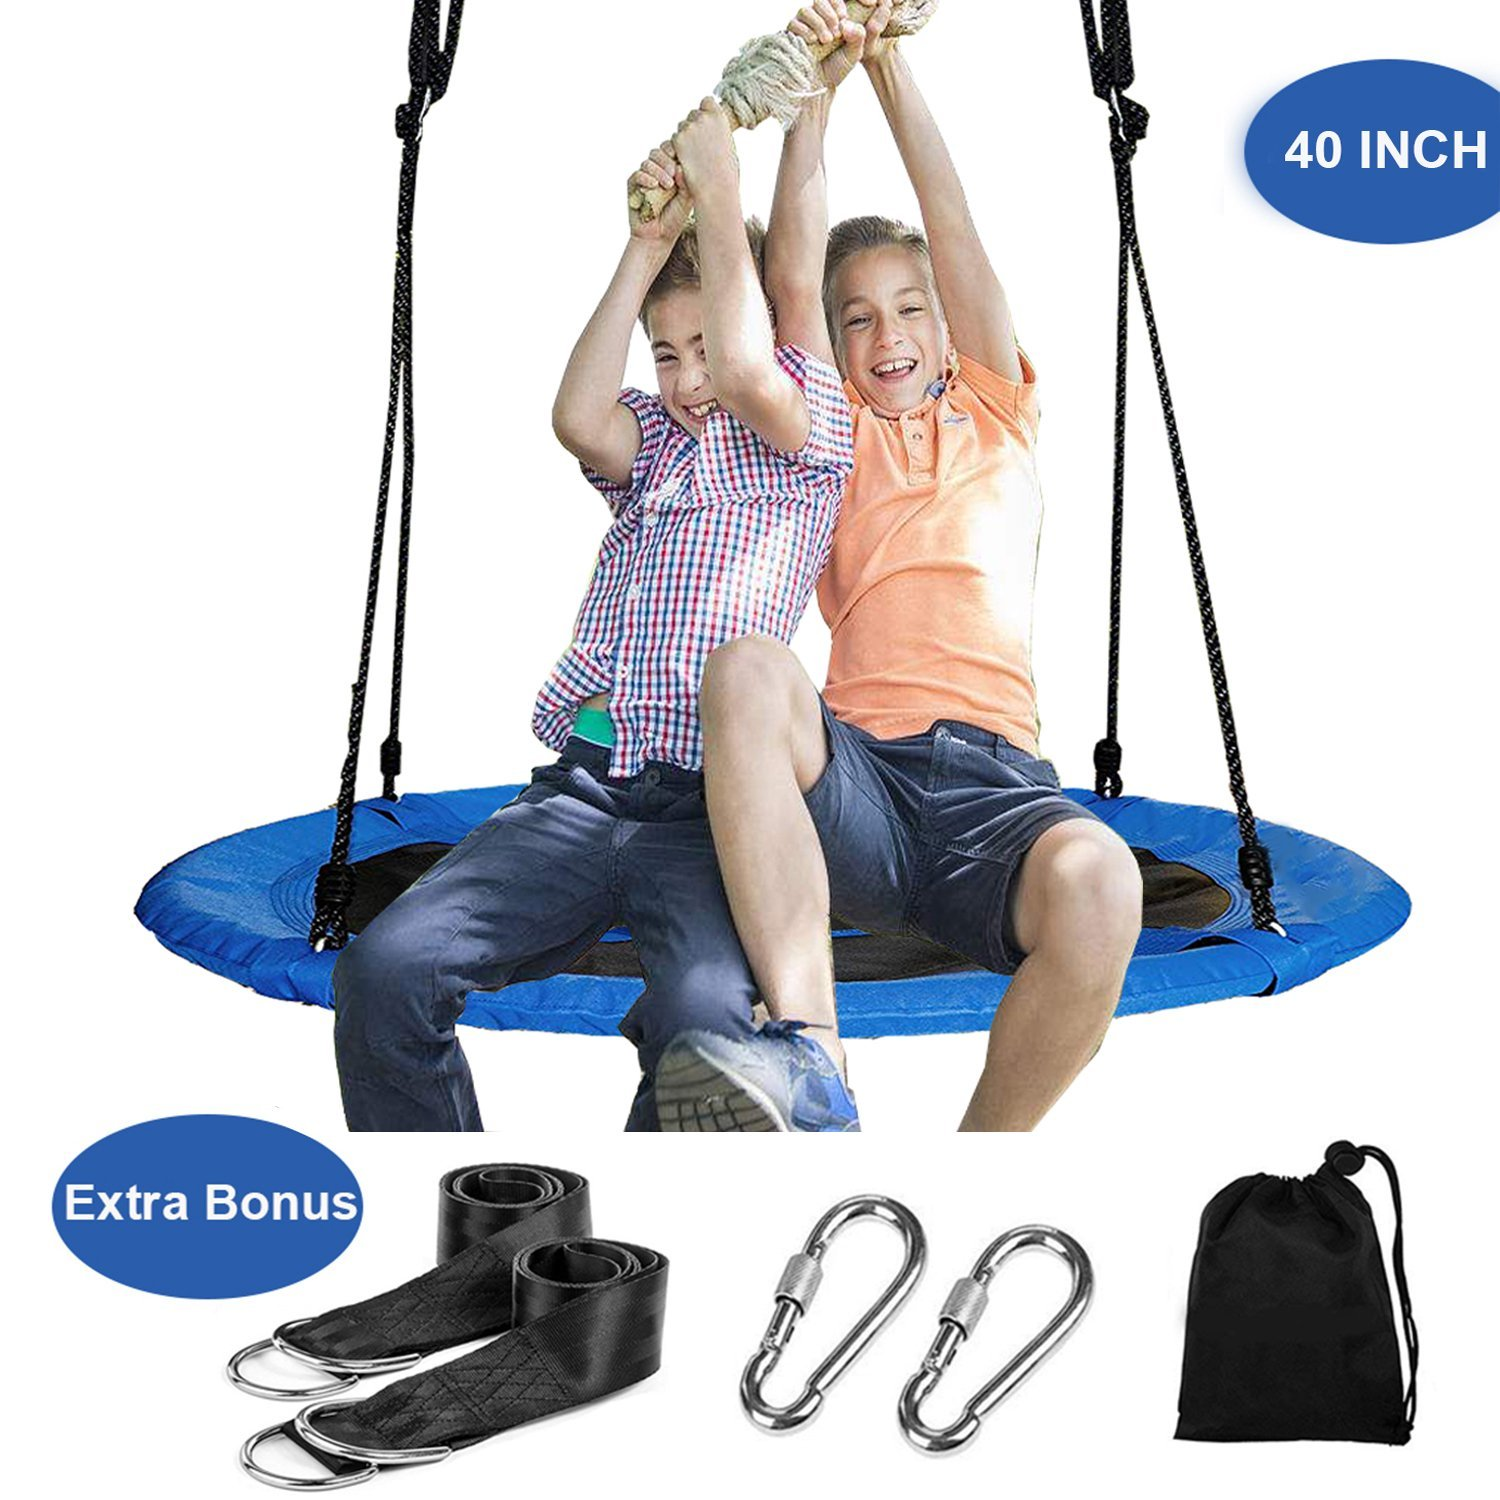 Reliancer 40'' Saucer Tree Swing for Backyard Kids w/ 2 Carabiners&10 FT Tree Swing Straps 600lbs Weight Capacity Weather Resistant 400D Fabric Durable Steel Frame Adjustable Ropes to 63inch(40inch)